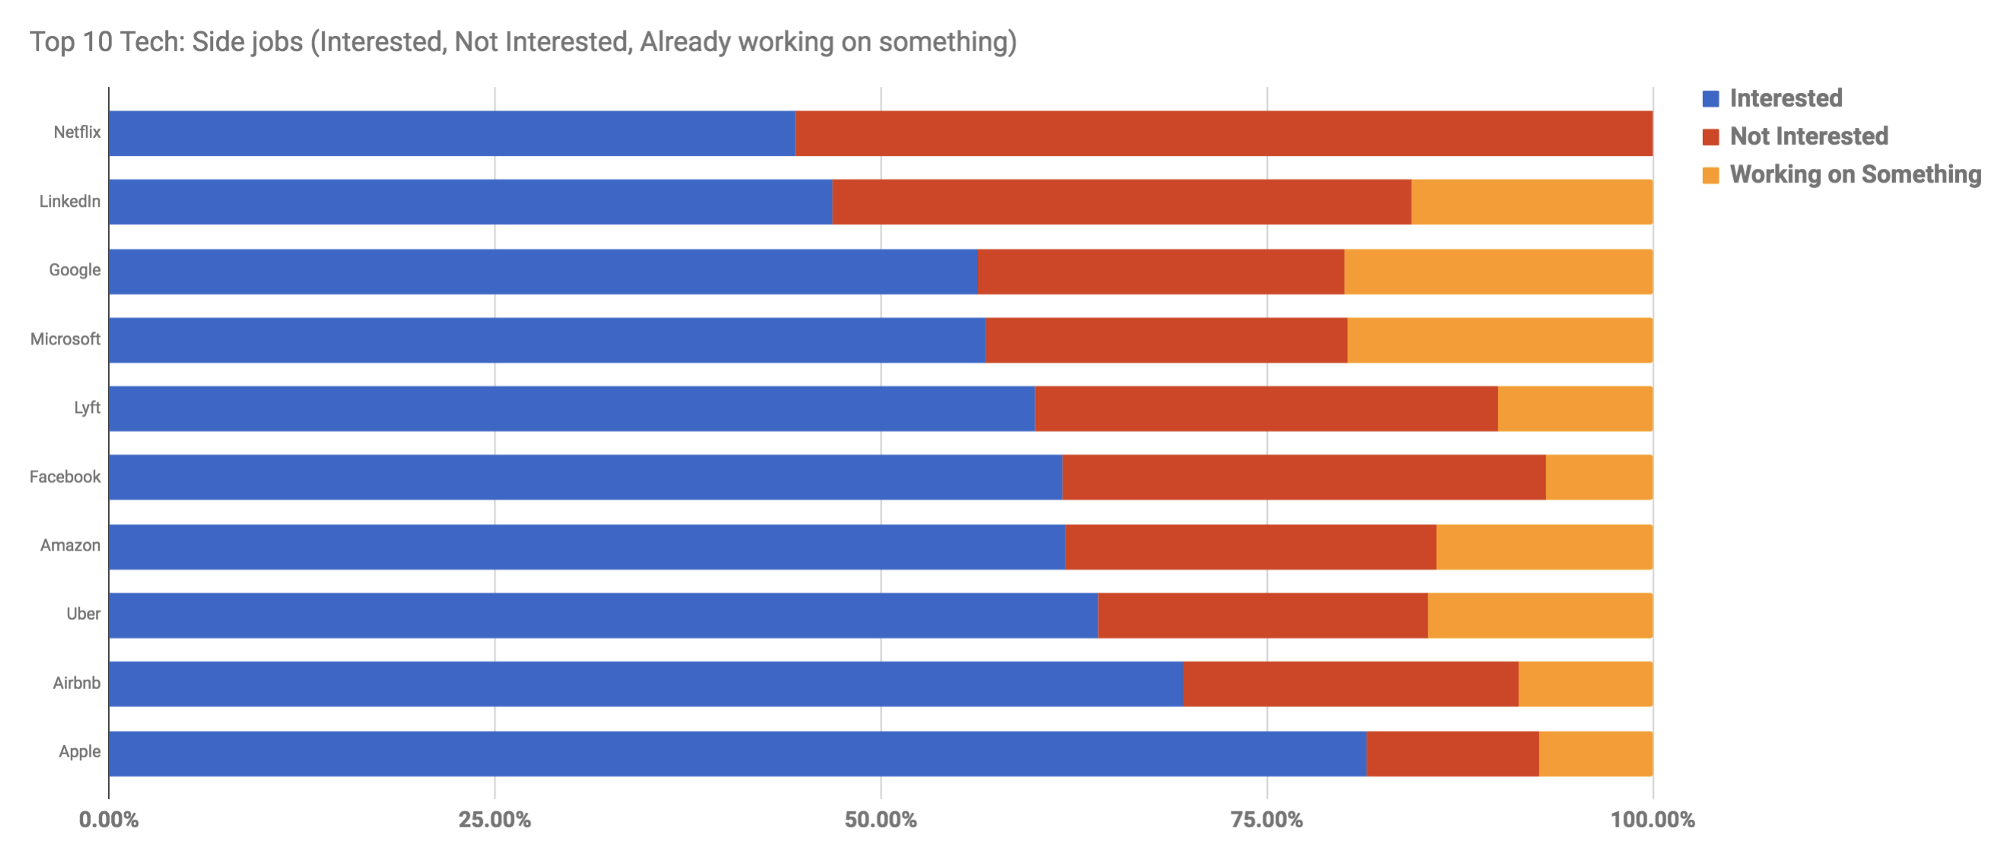 Survey says, 20% of Googlers are working on a side project–and 81% of Apple employees want to